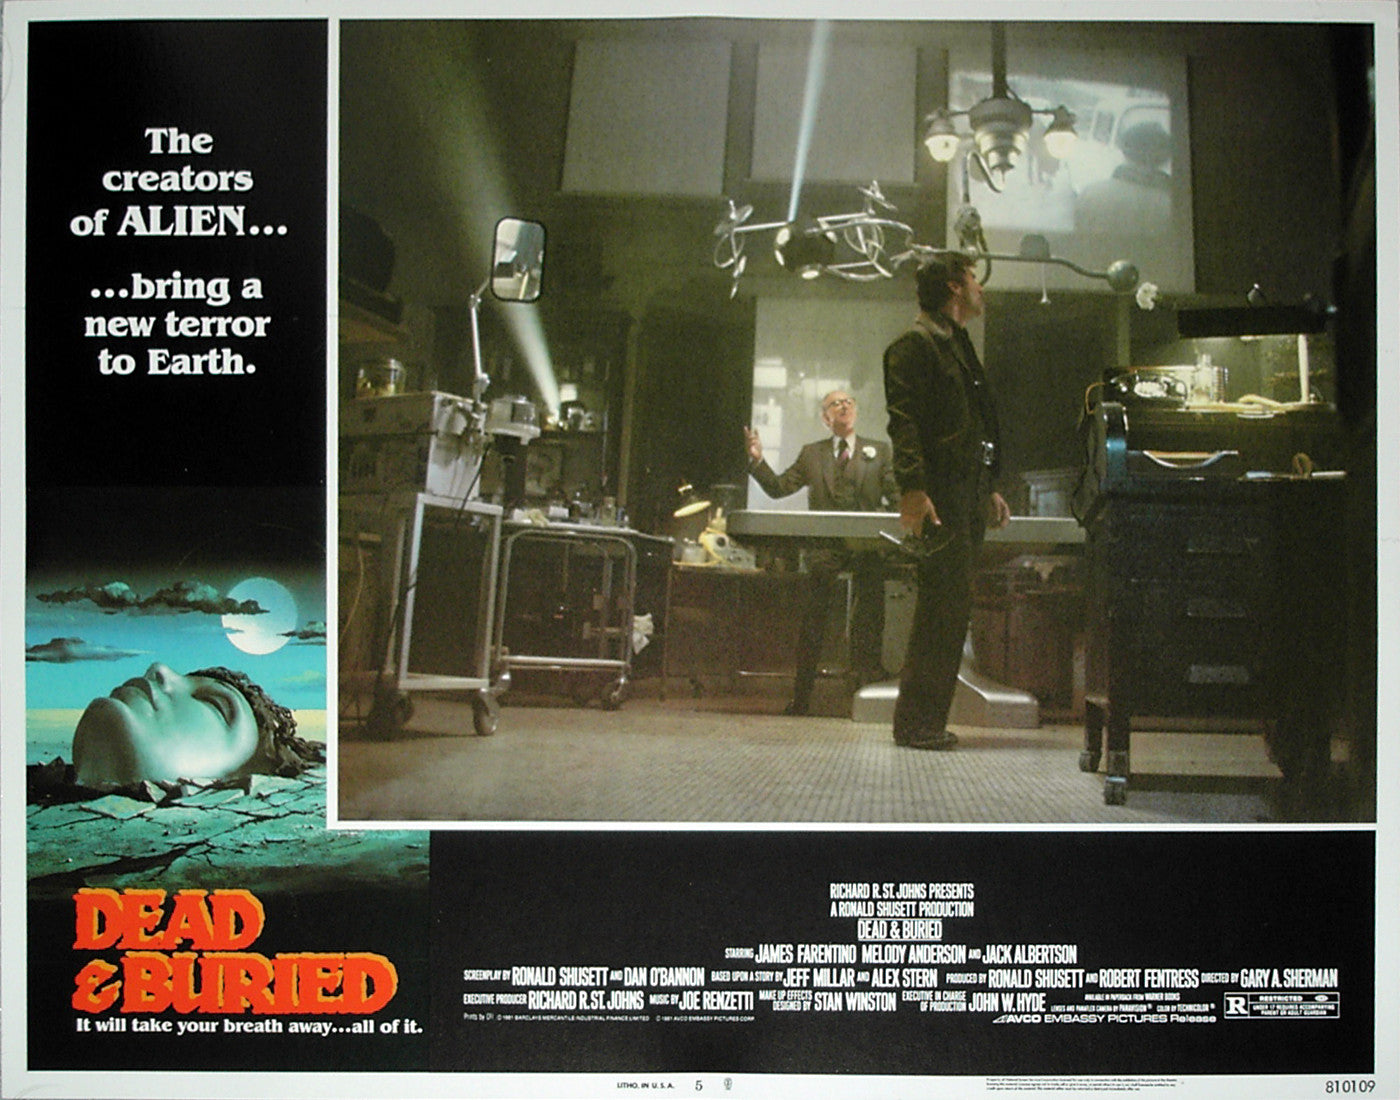 DEAD & BURIED - US lobby card v5